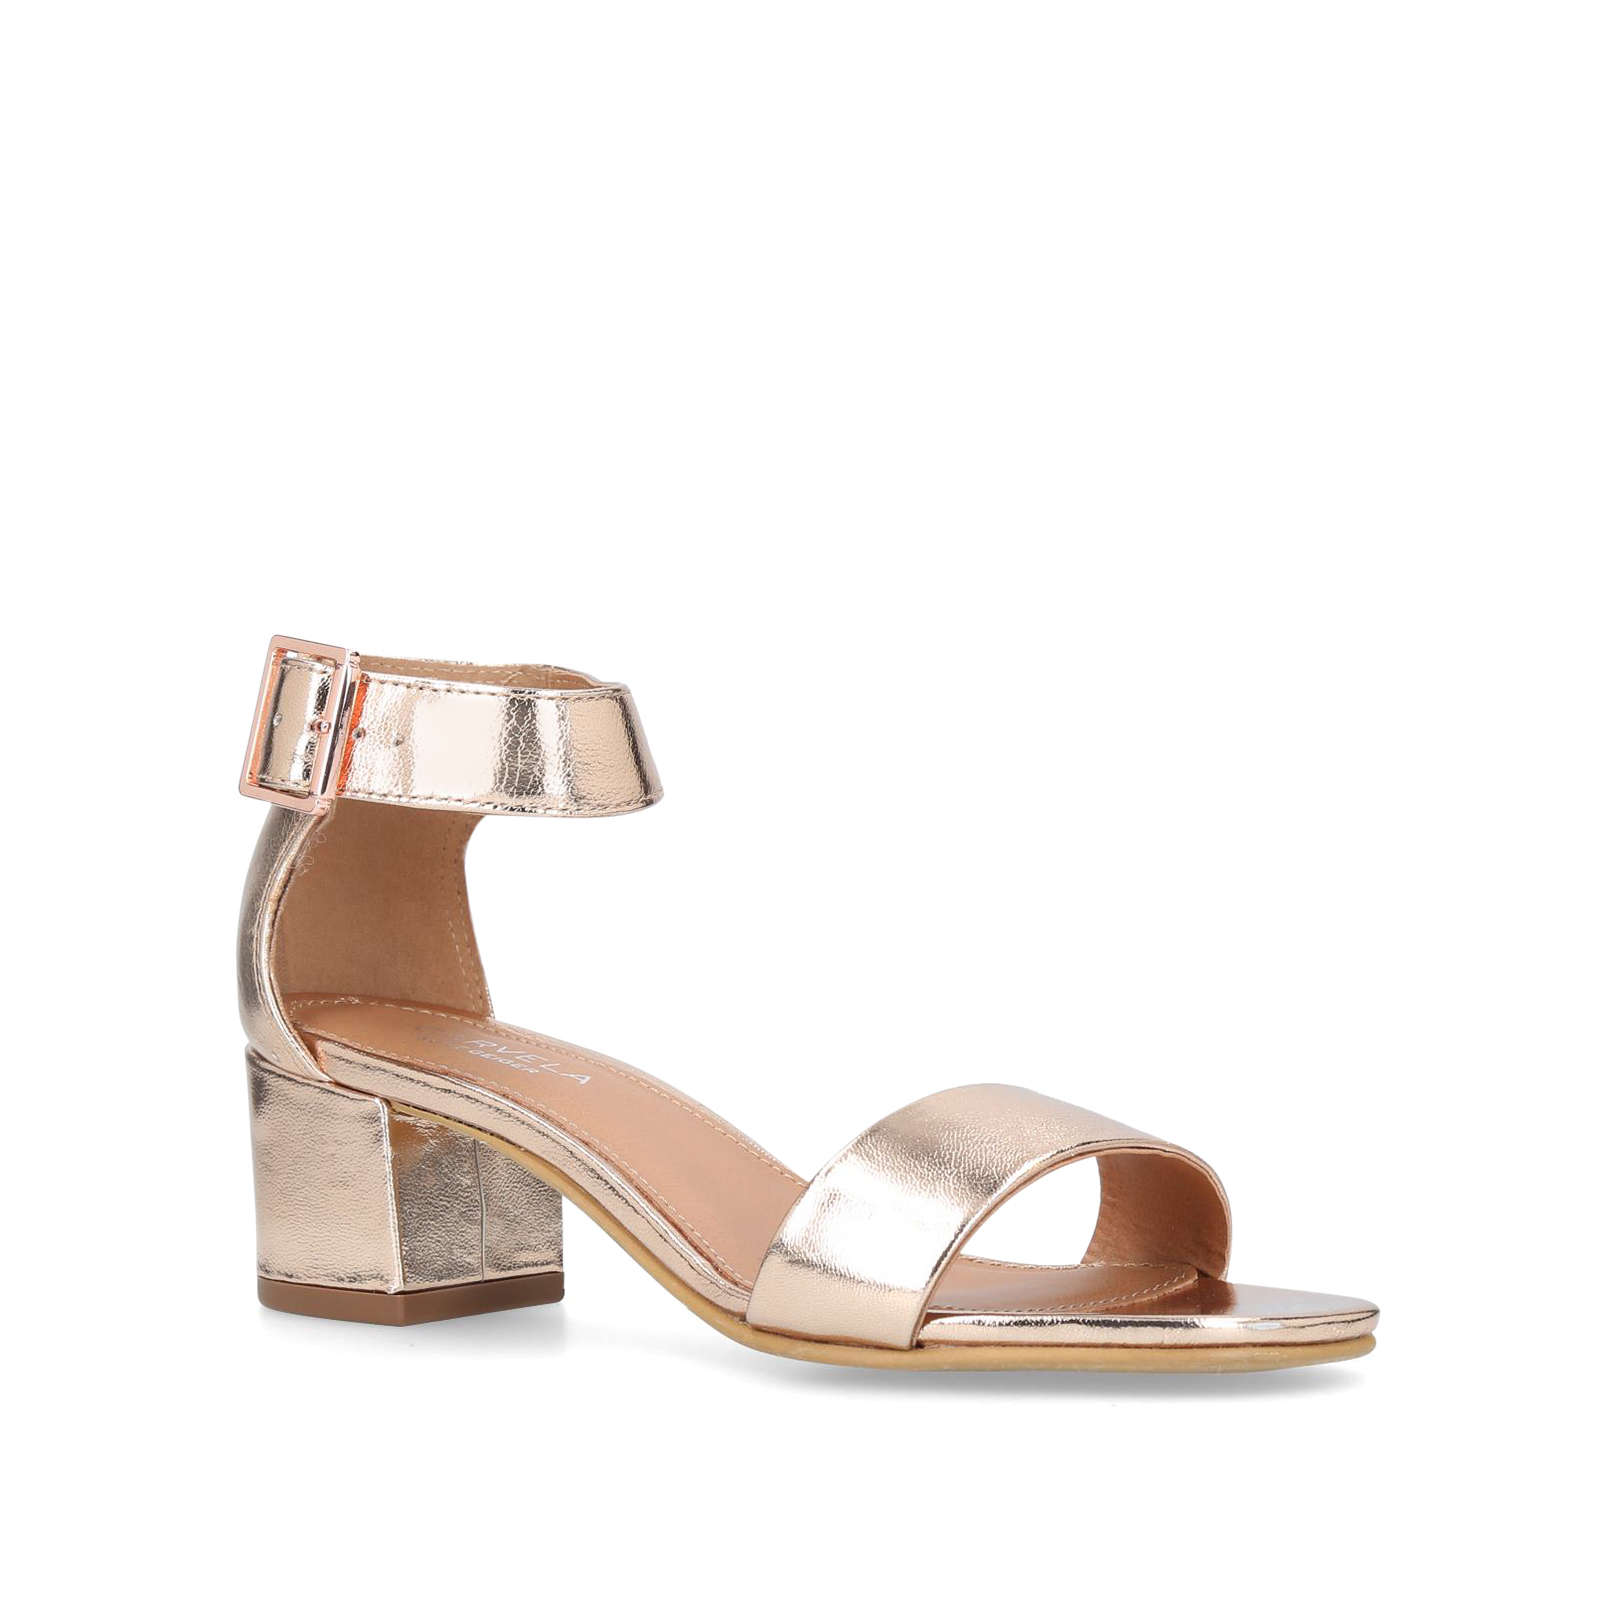 8cd674bbb4a SHADOW Carvela Shadow Bronze Leather Heeled Sandal Block Heel by CARVELA